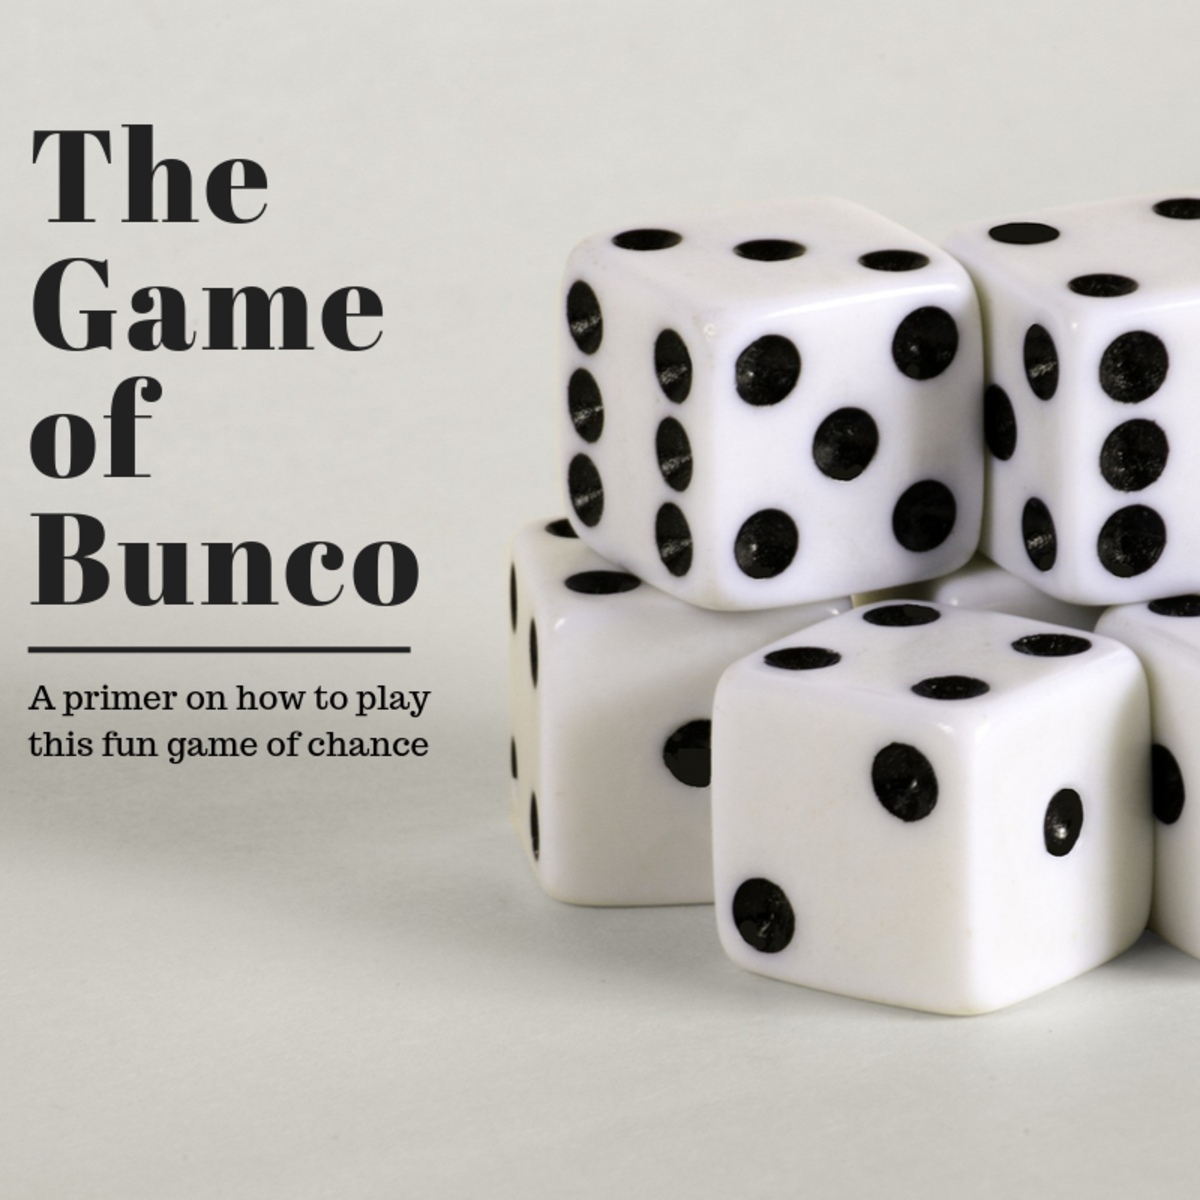 This guide will show you how to play the dice game of Bunco and breaks down some of the strategy.